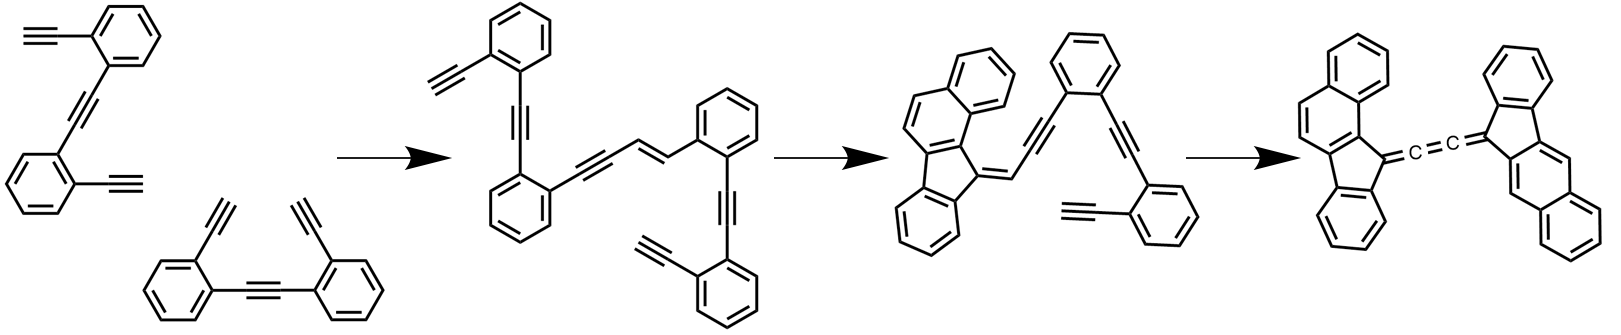 Coupling and cyclization ofsformation of enediyne molecules